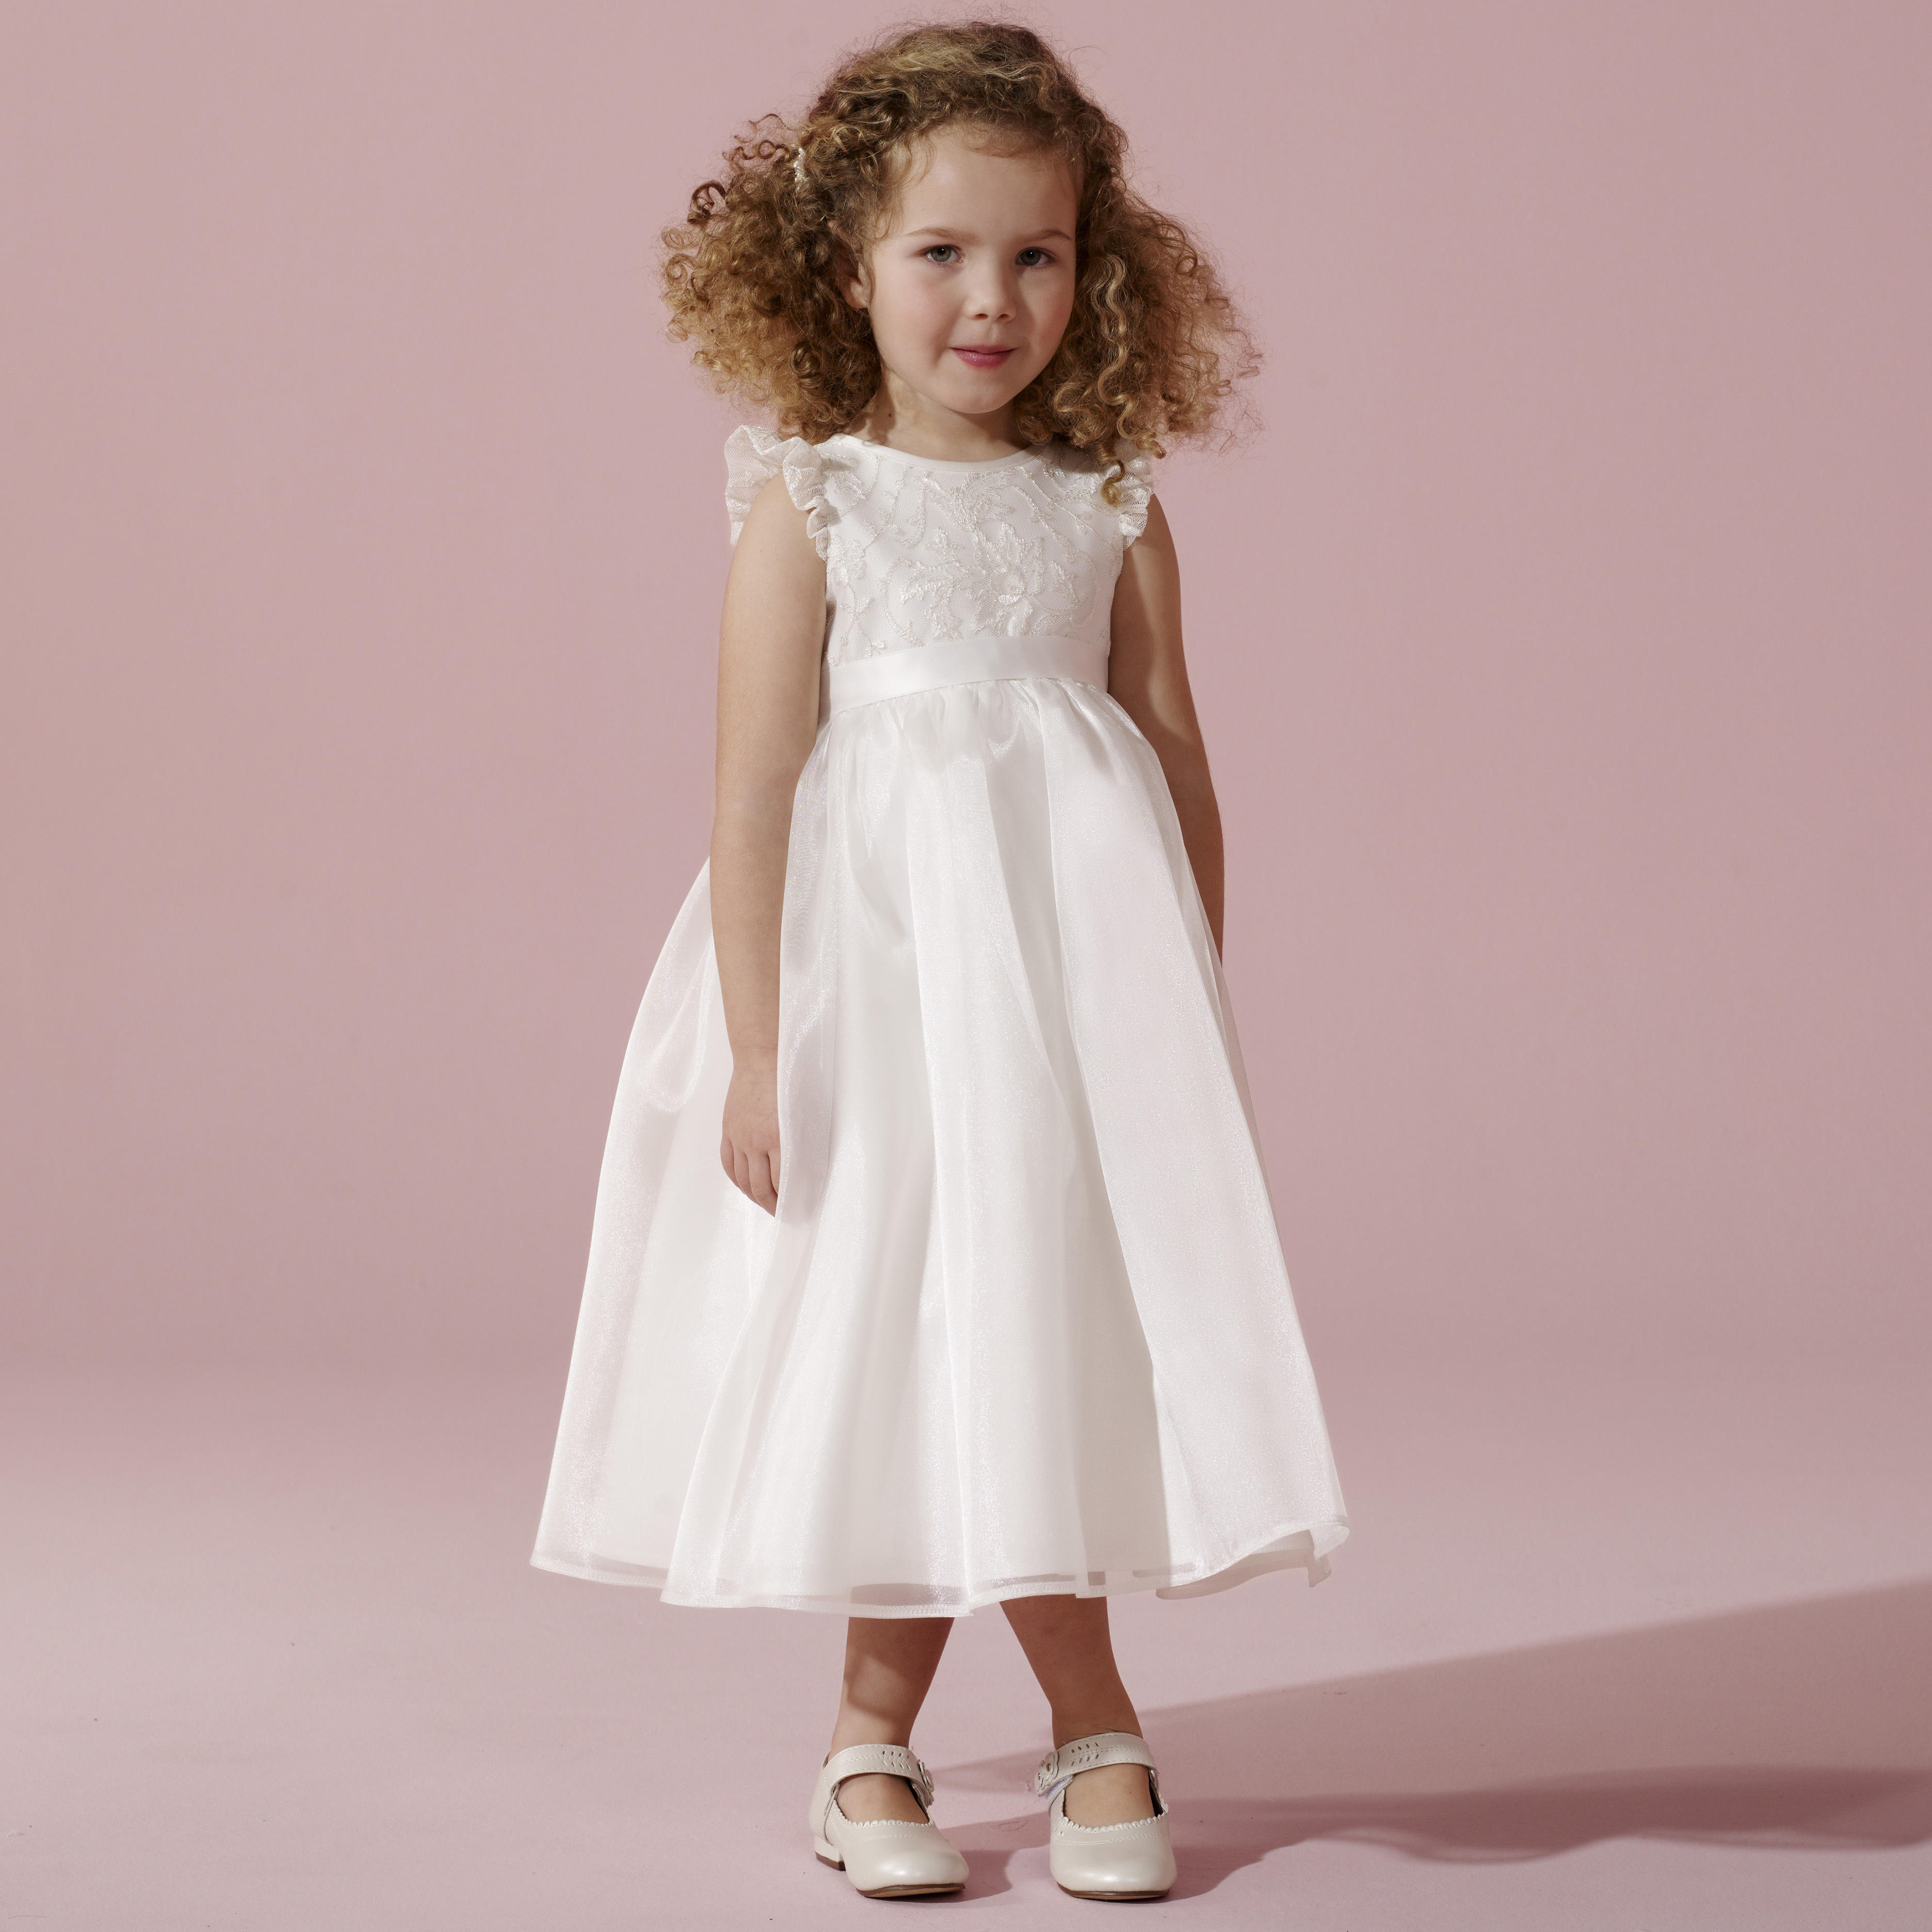 Lace flower girl bridesmaids dresses 13000 embroidered organza flower girl dress ombrellifo Choice Image